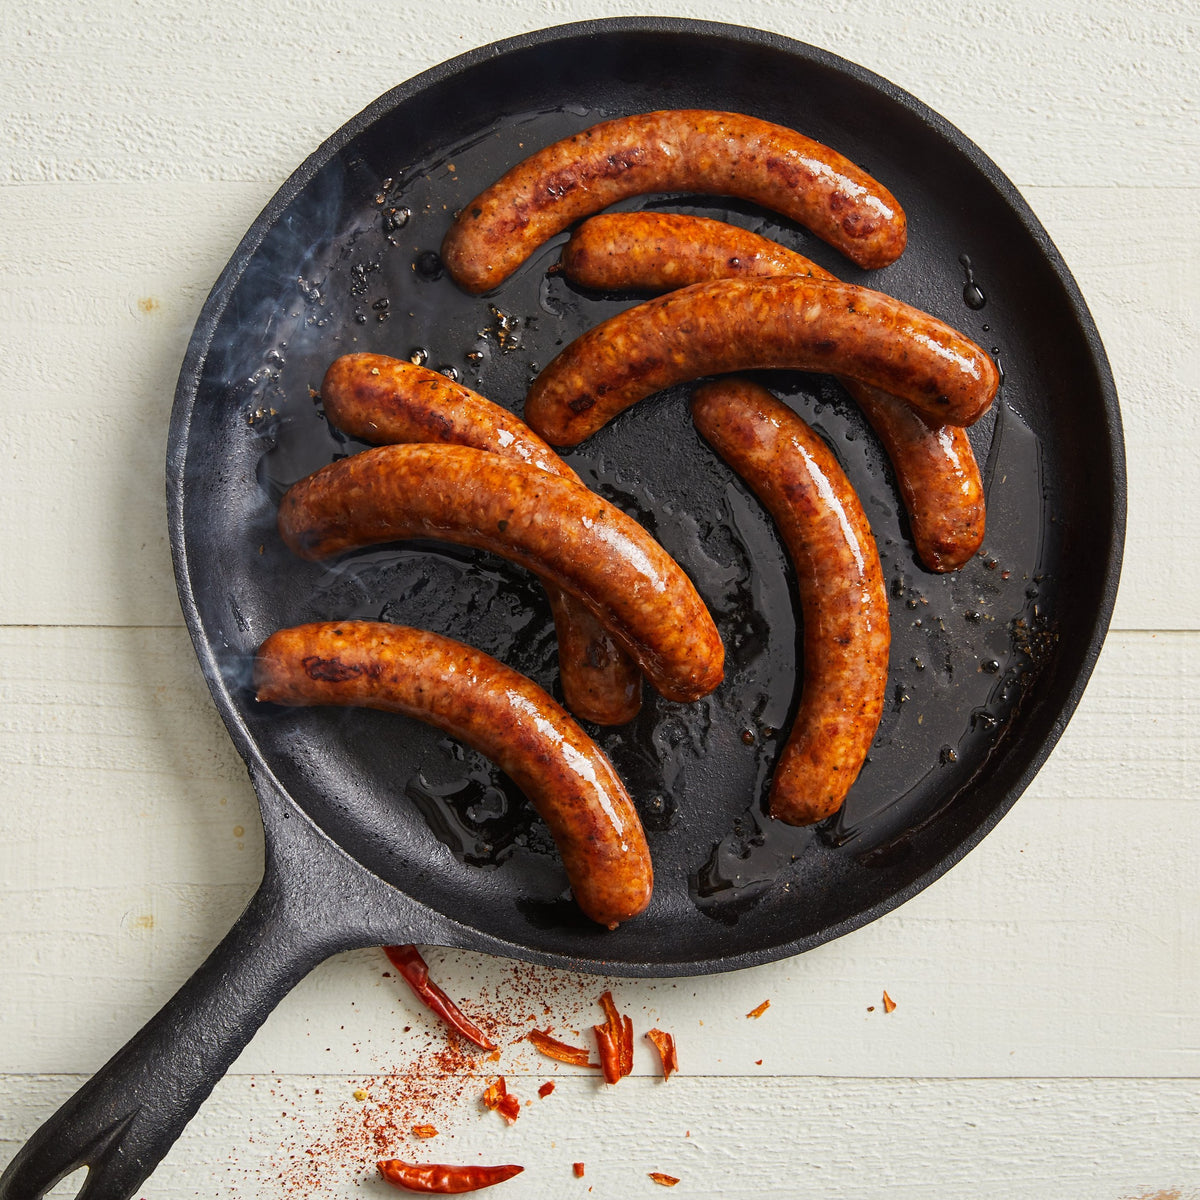 Image of Lamb Merguez (No Pork). 6-7 links, about 1 lb. an cooked take on the red, spicy sausage popular in Rance, North Africa and the Middle East featuring Pure Bred lamb and a variety of herbs and spices